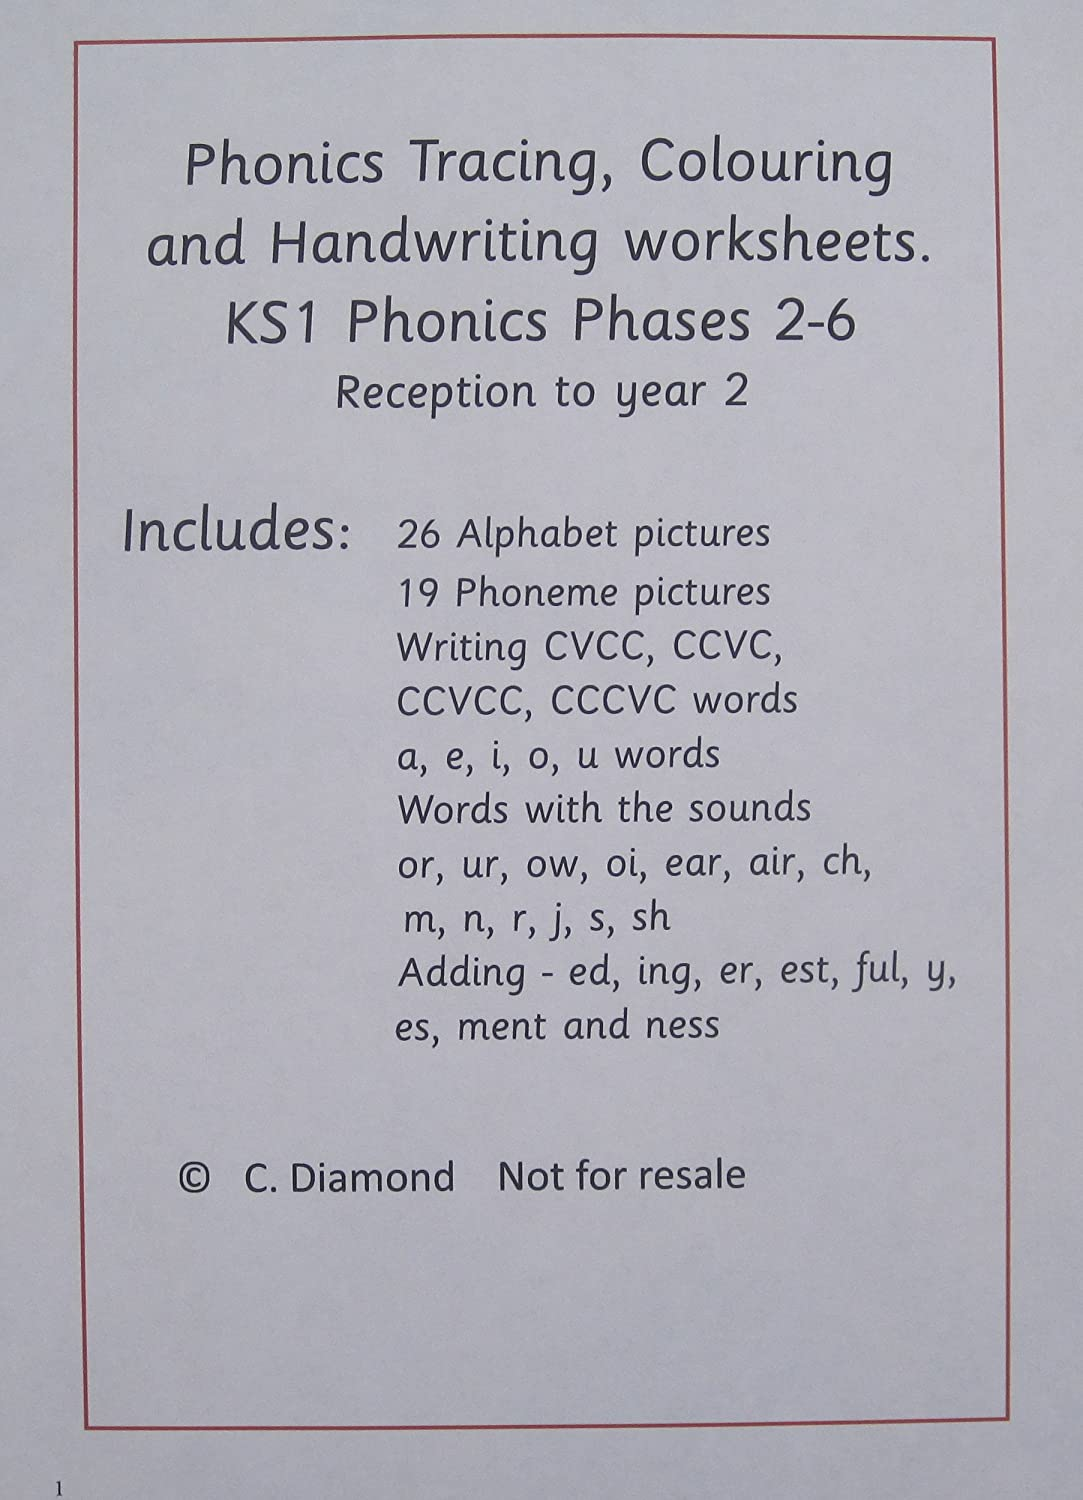 86 phase 6 phonics worksheets for ages 6 7 years pdf file to